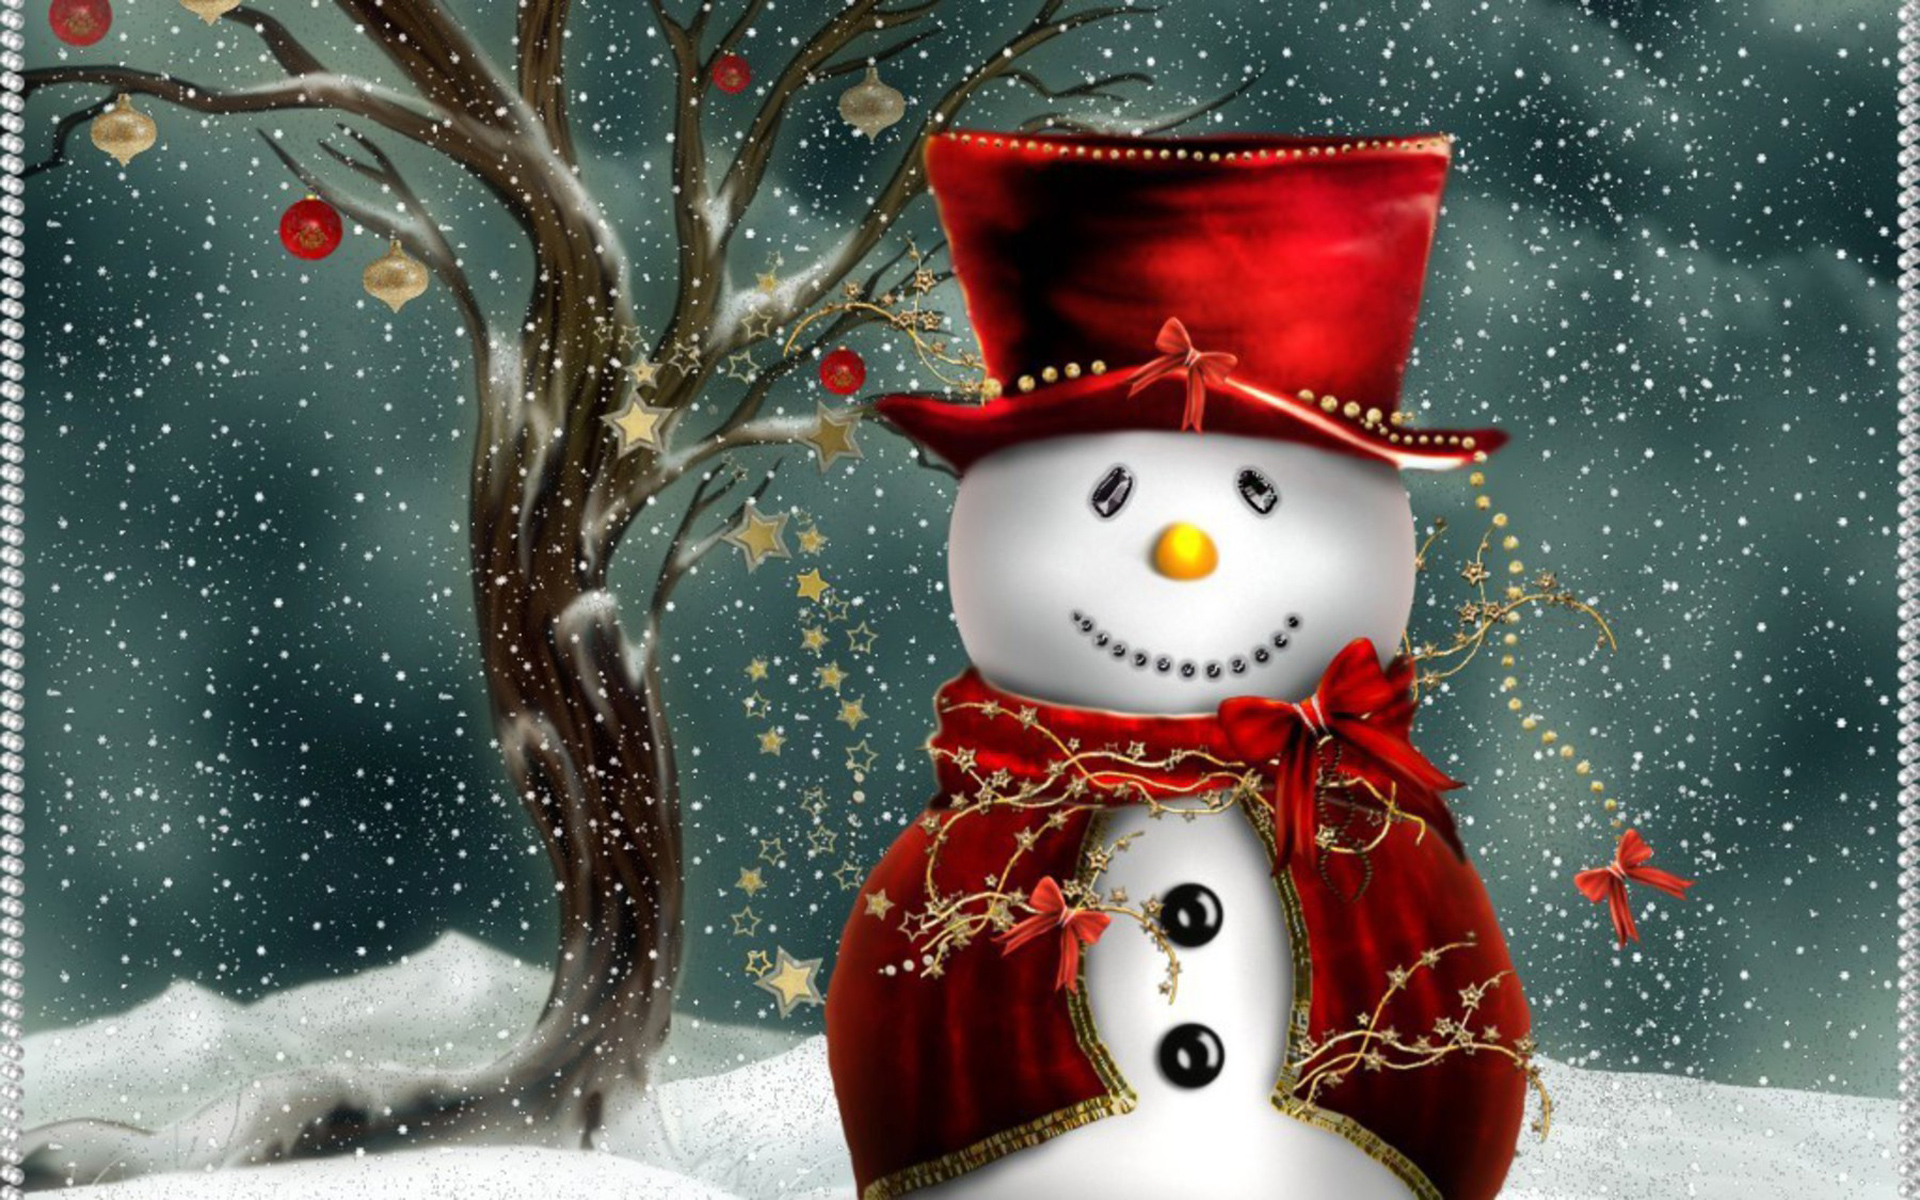 desktop wallpaper of cute christmas snowman computer desktop 1920x1200